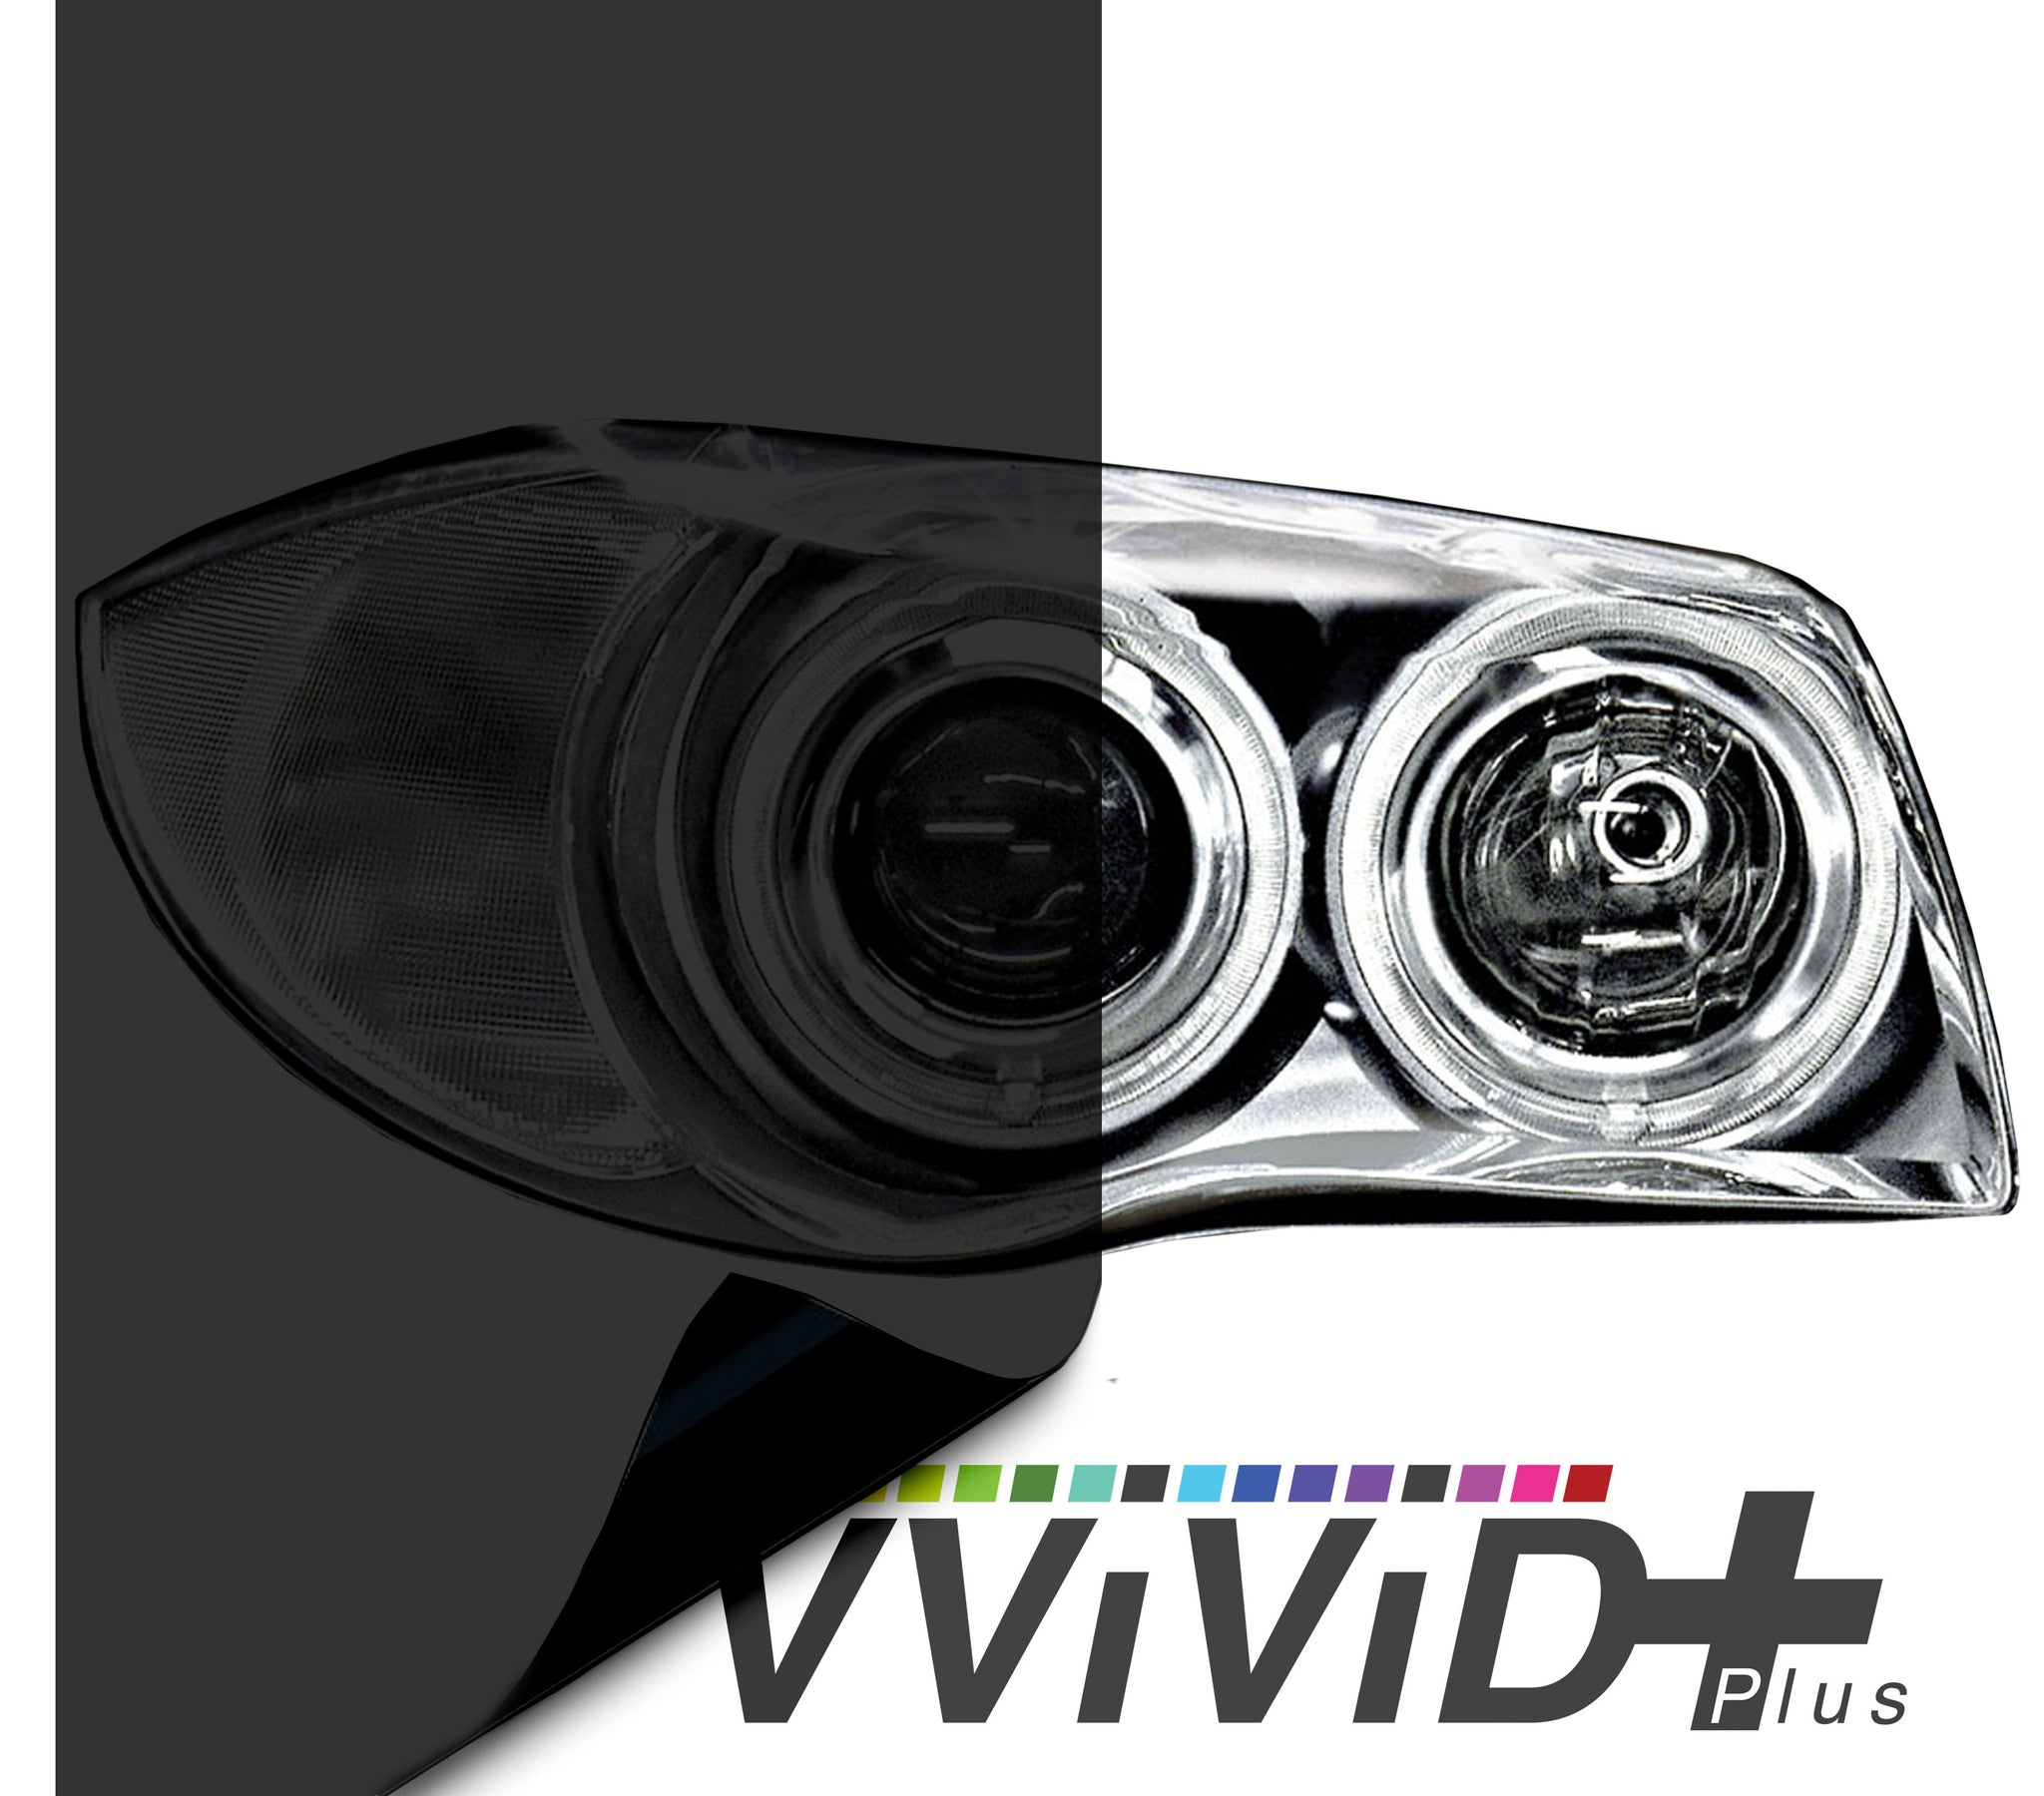 2017 VViViD+ Dark Smoke Air-tint® Headlight Tint Vinyl Film | Vvivid Canada